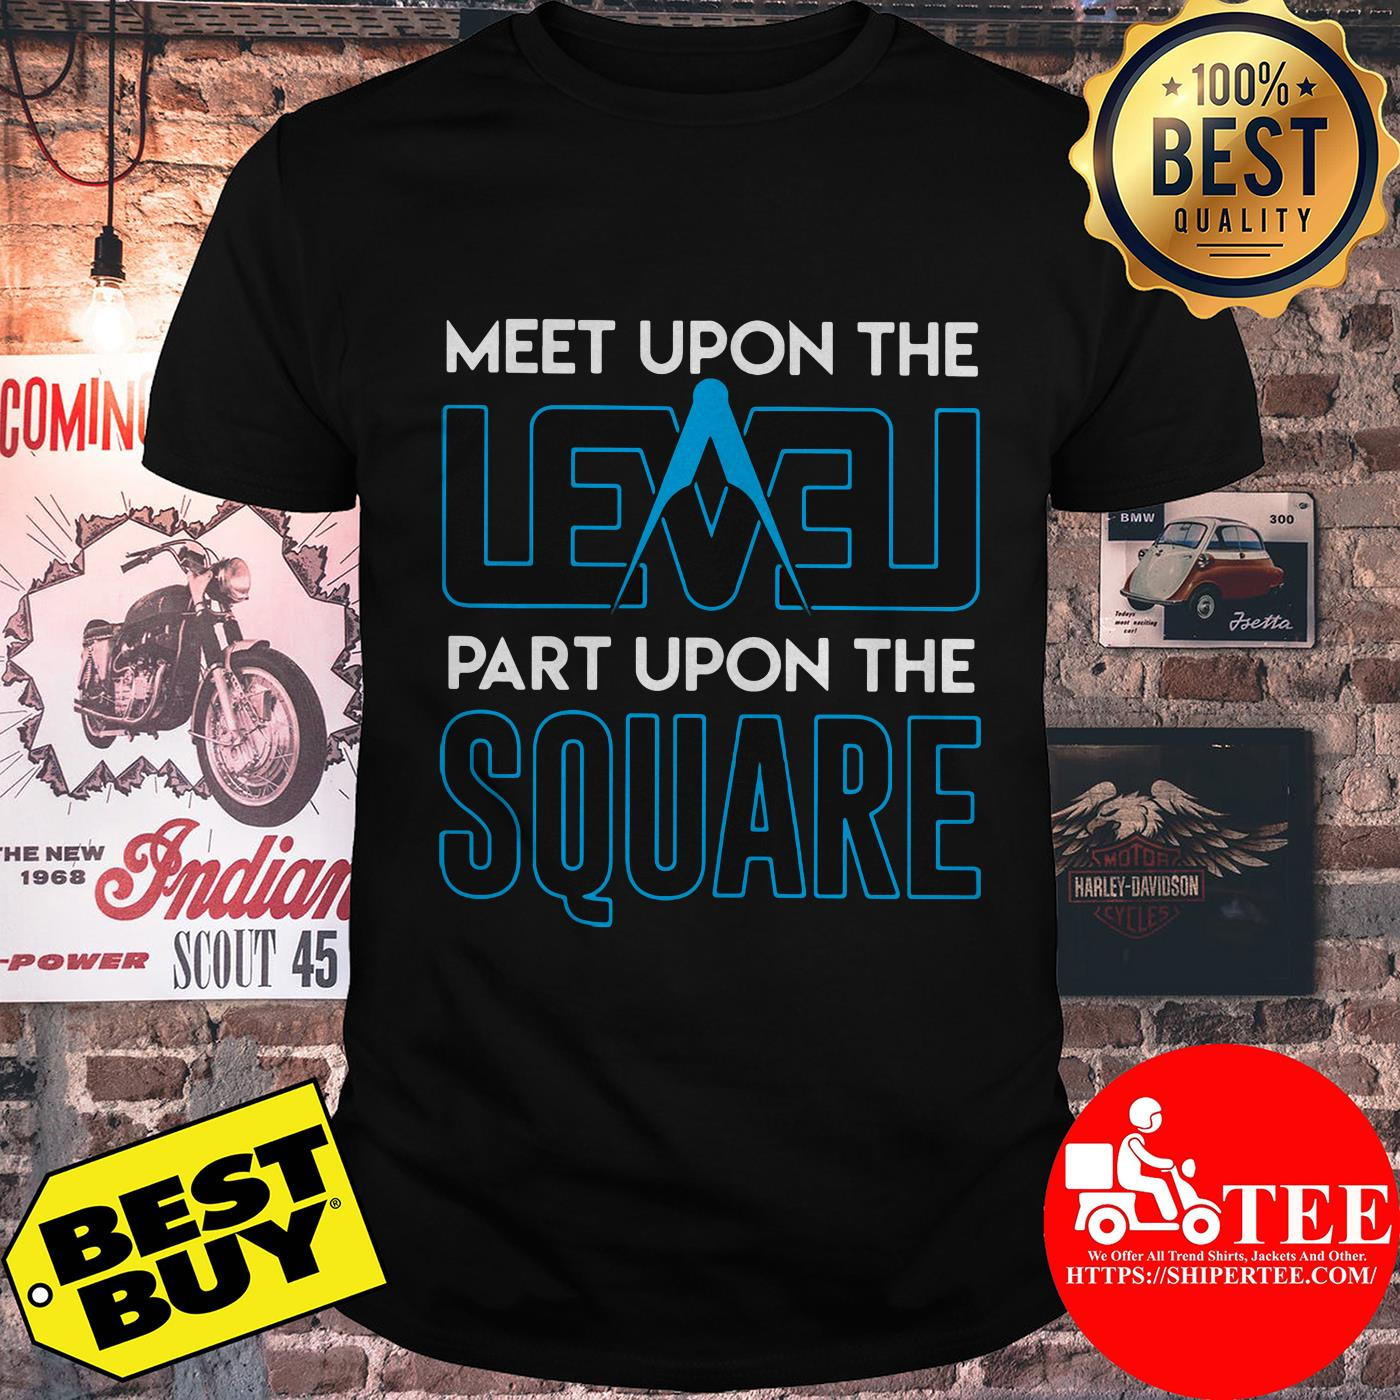 Meet upon the level part upon the square compass shirt